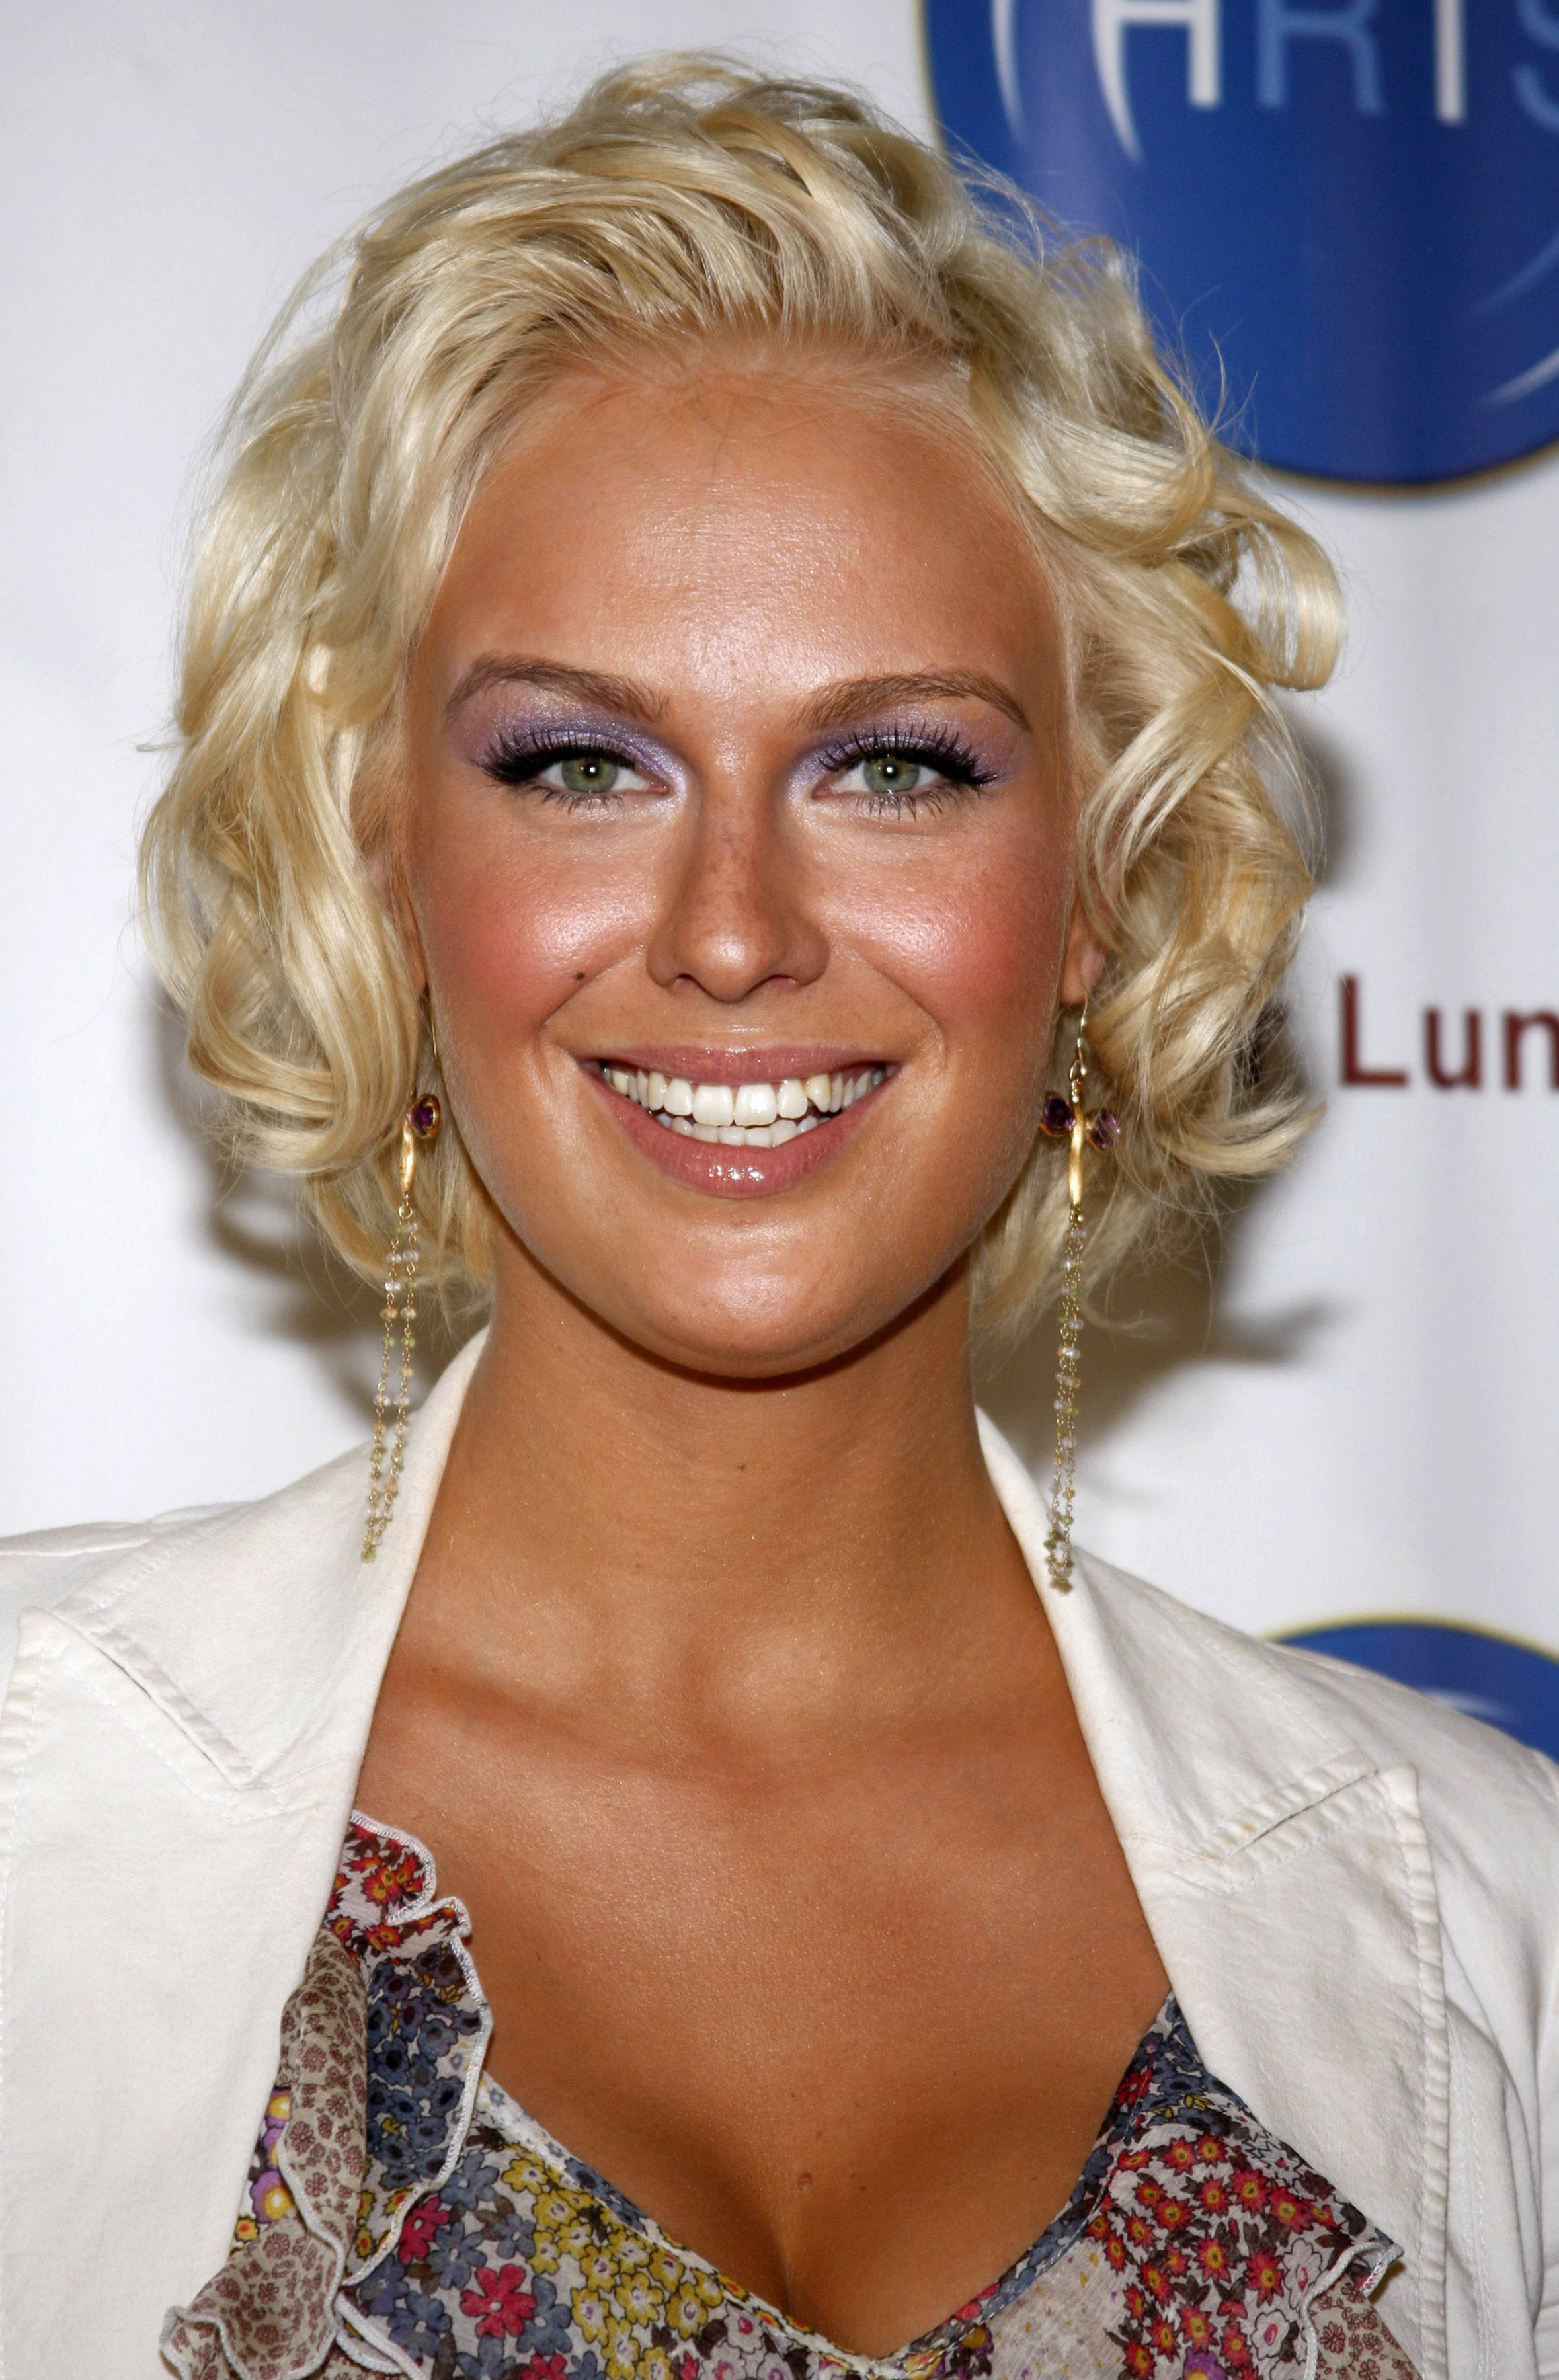 CariDee with a Curled Updo